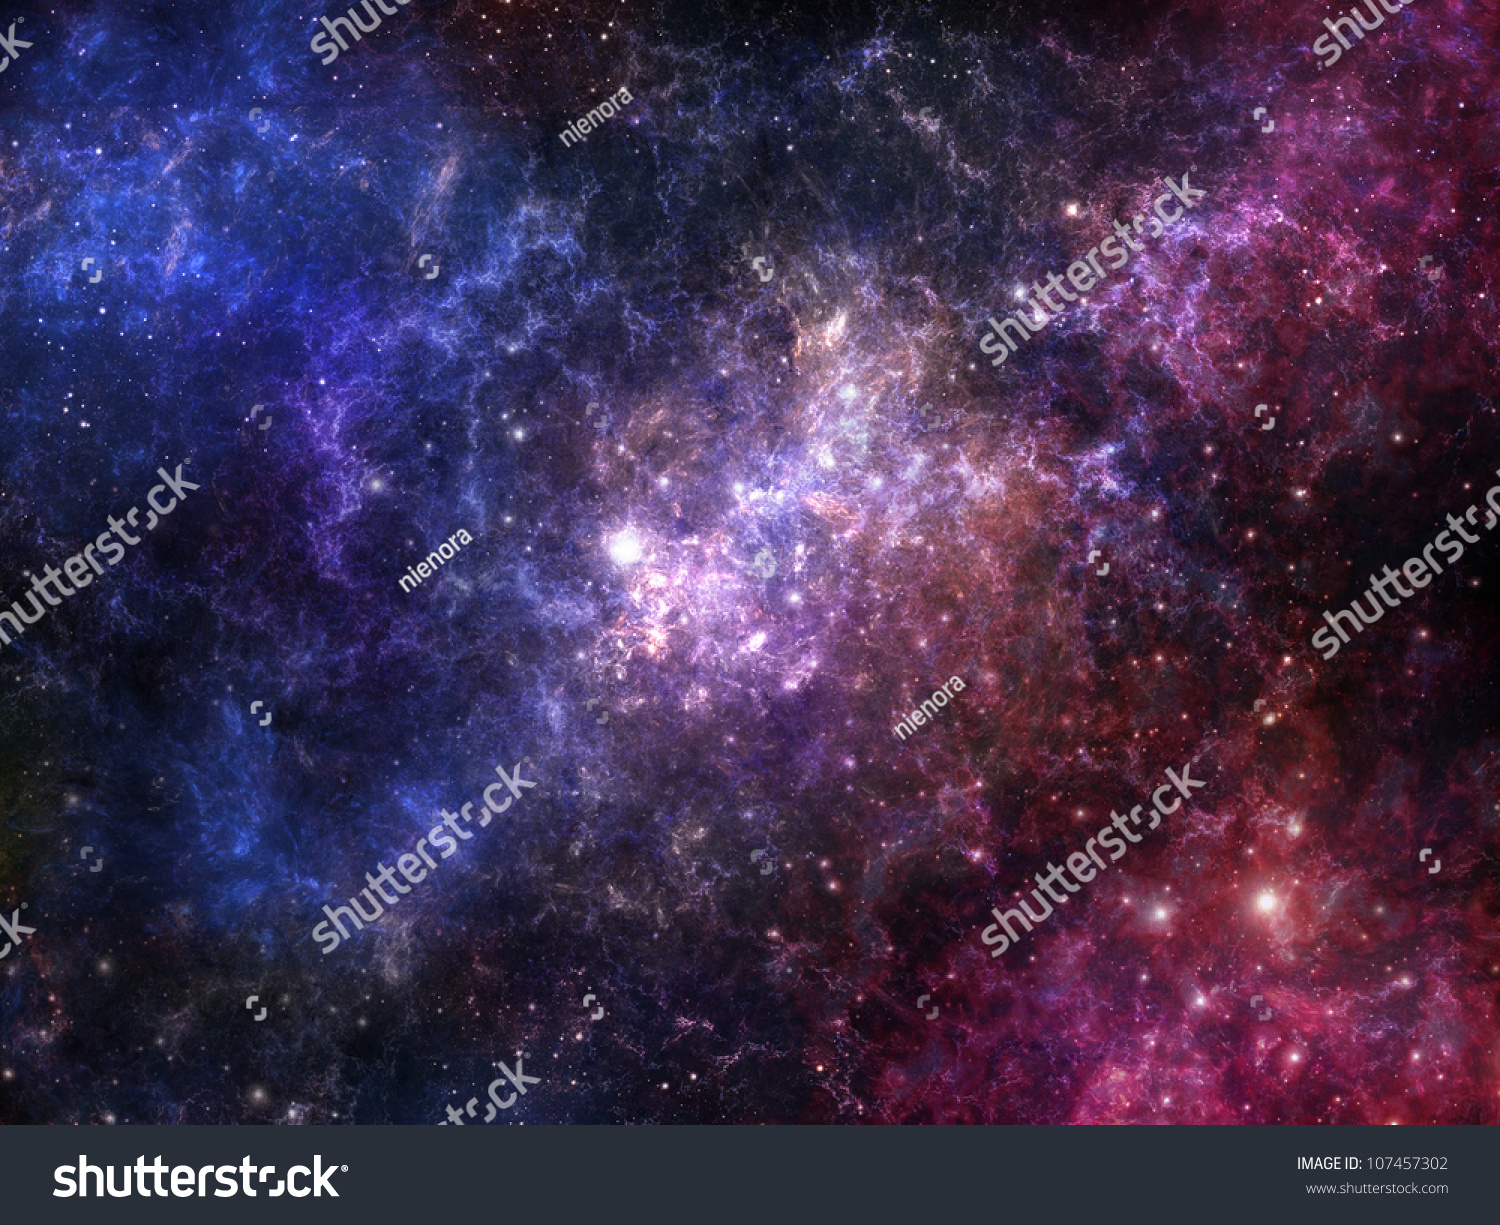 Colorful Nebula In Deep Space wallpapers